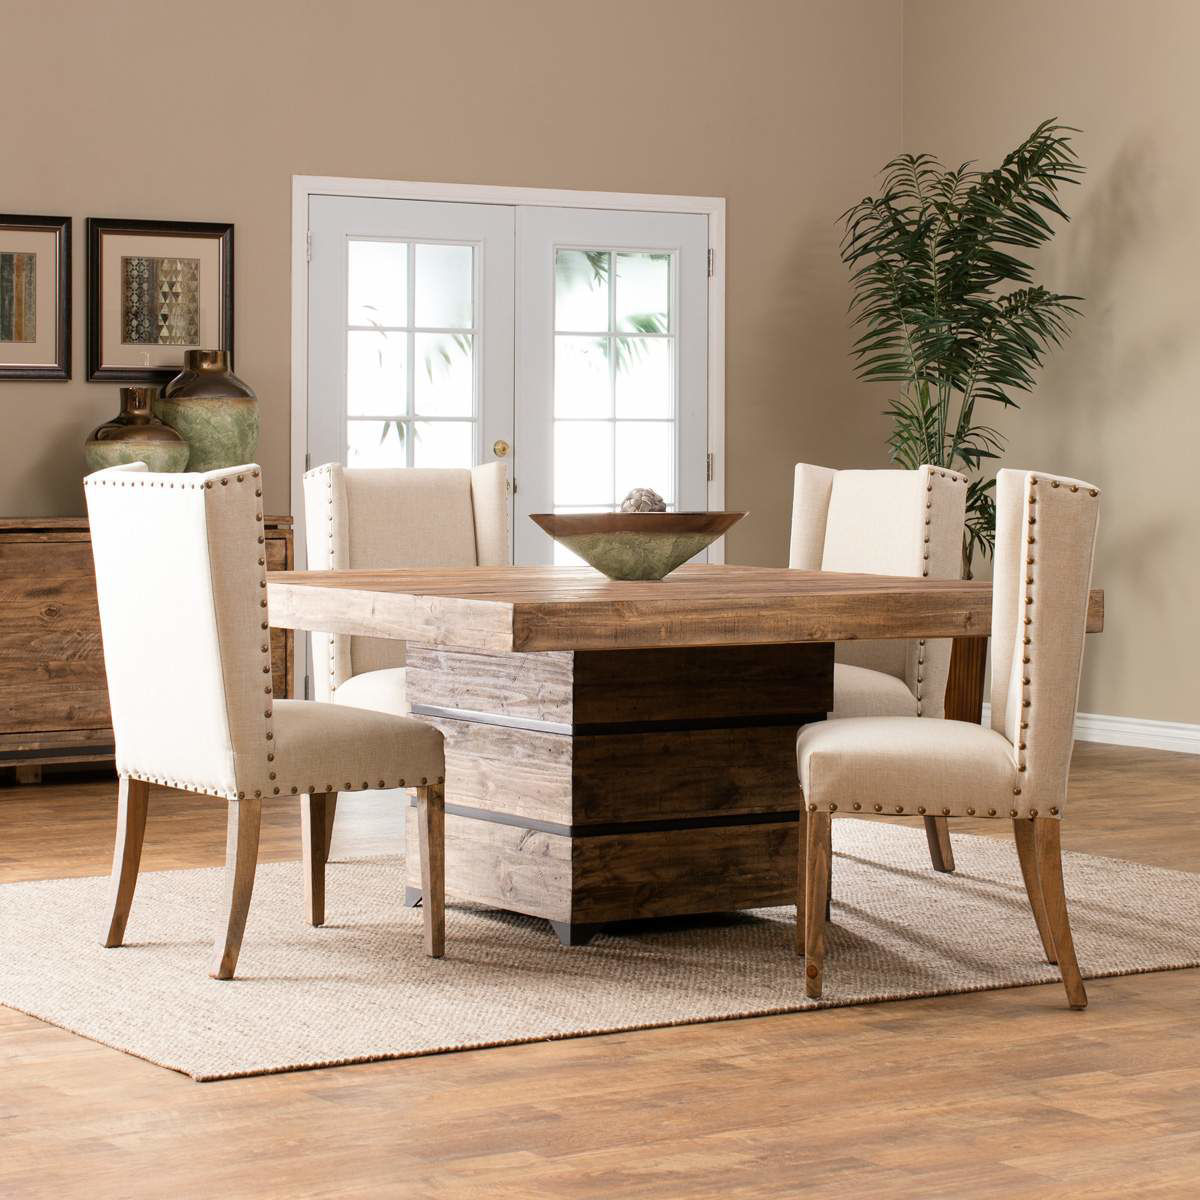 La Jolla 5 Pc Dining Set Nl700 Only 1 799 00 Houston Furniture Store Where Low Prices Live